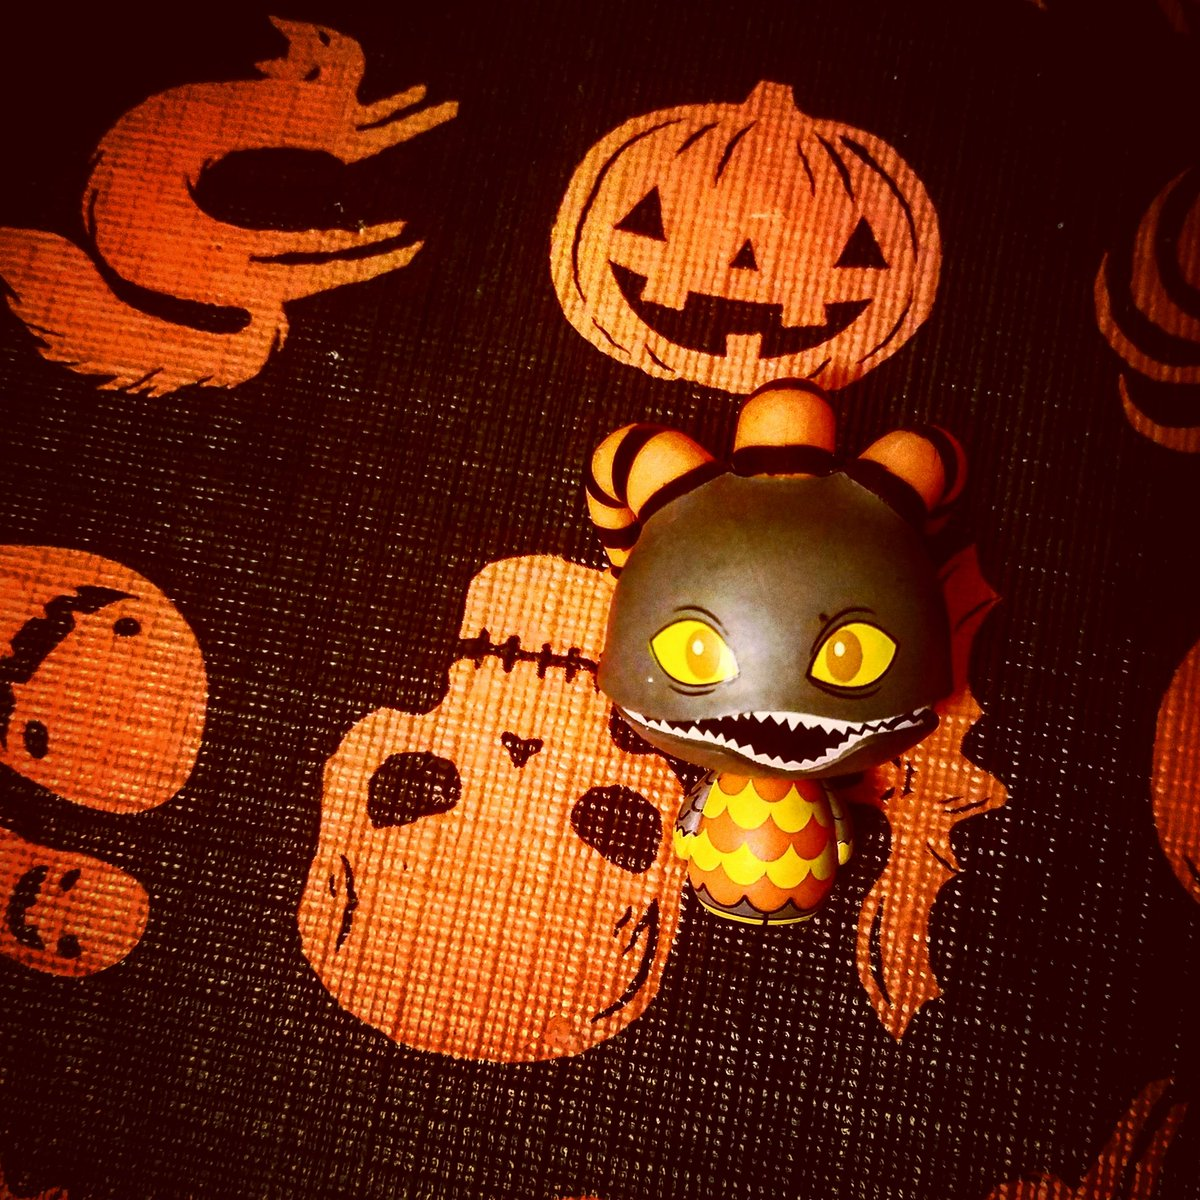 @OriginalFunko Someone was trying to blend into the table cloth! #PSHHappyHour